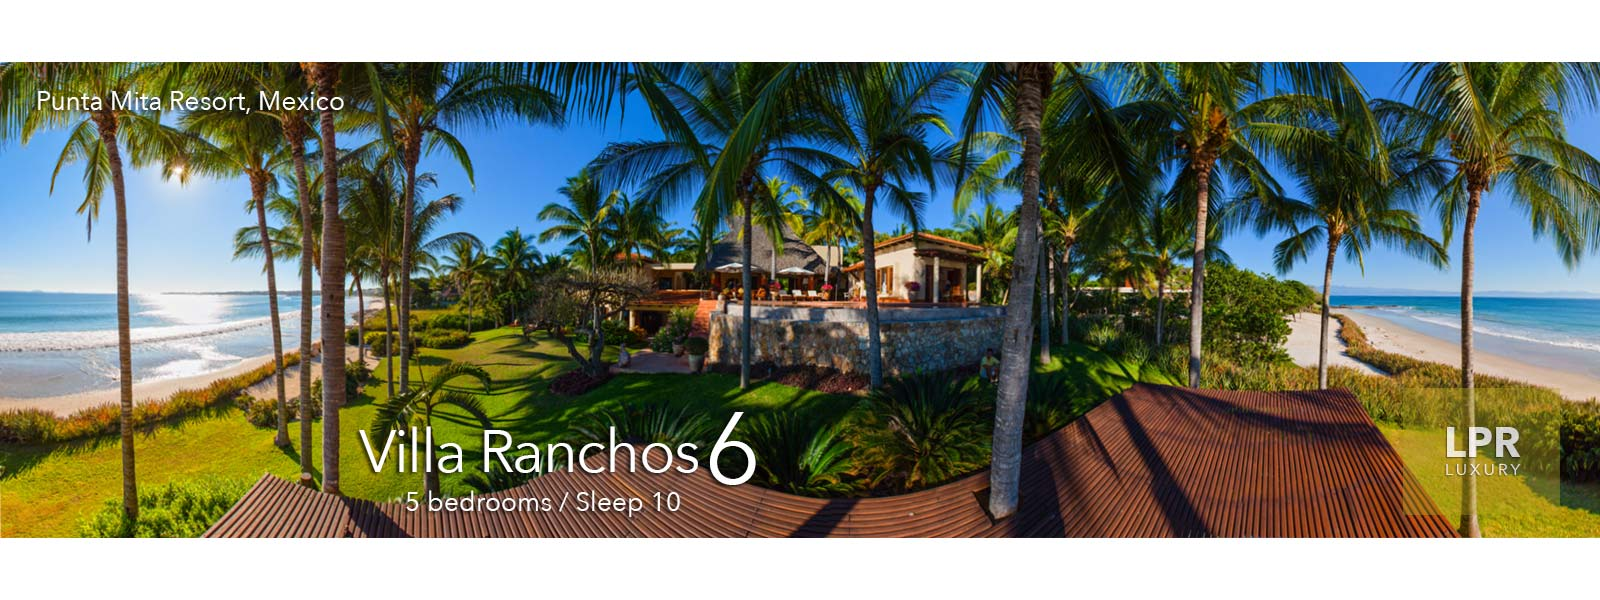 Villa Ranchos 6 at the Punta Mita Resort - Ultra Luxury Punta Mita Vacation Rentals and Real Estate